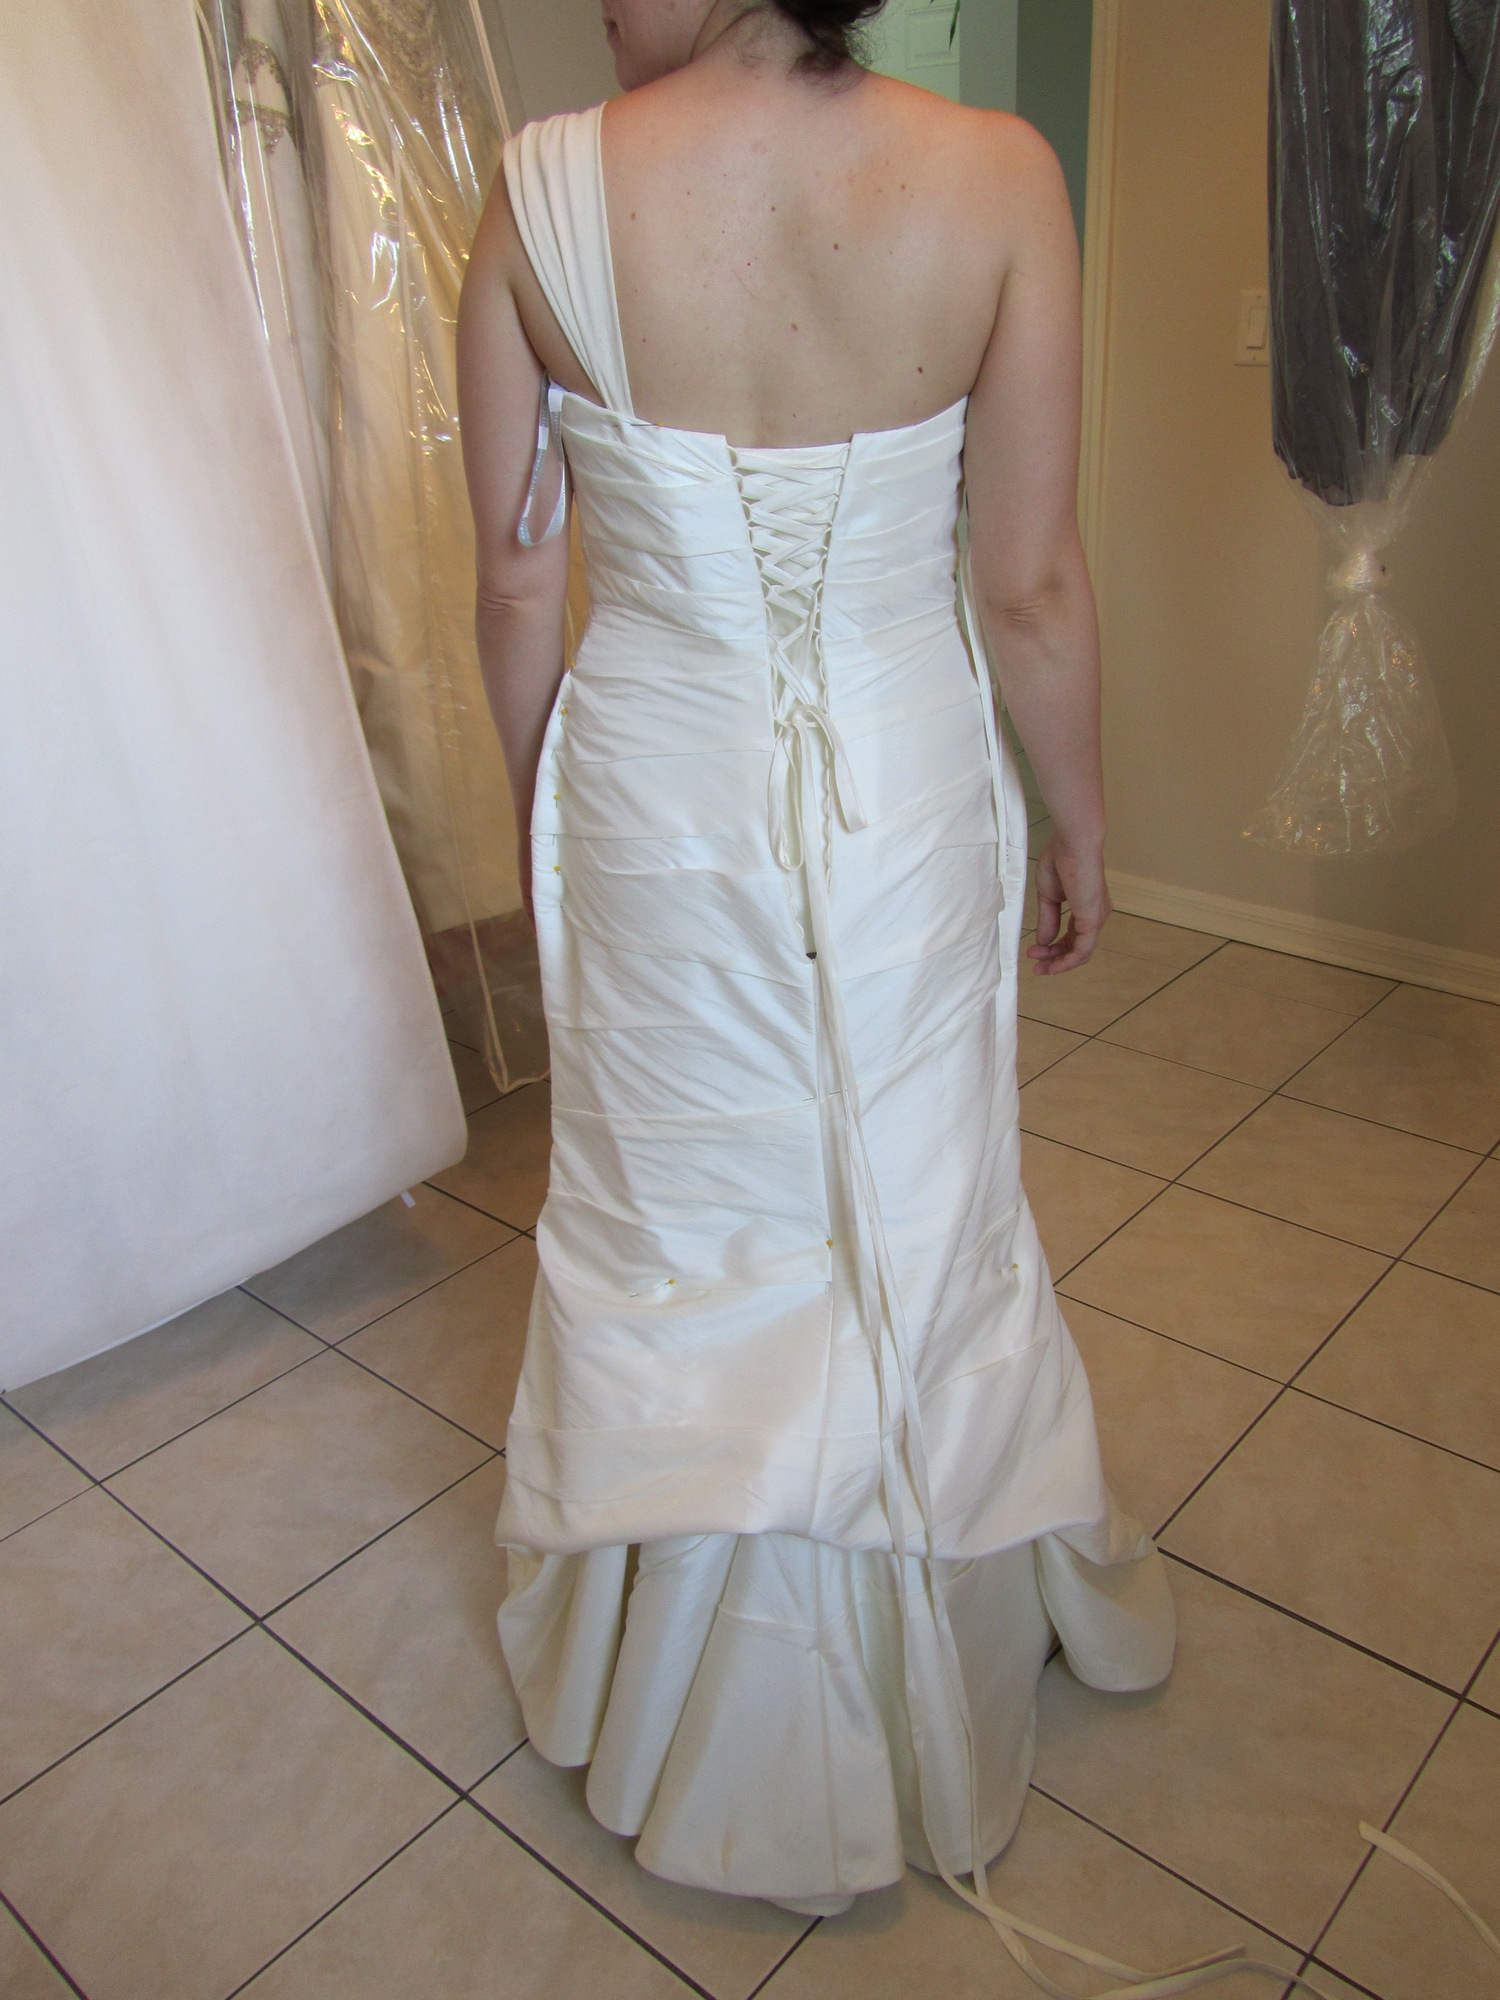 Loose on top adventures in dress fitting for Loose fitting wedding dresses